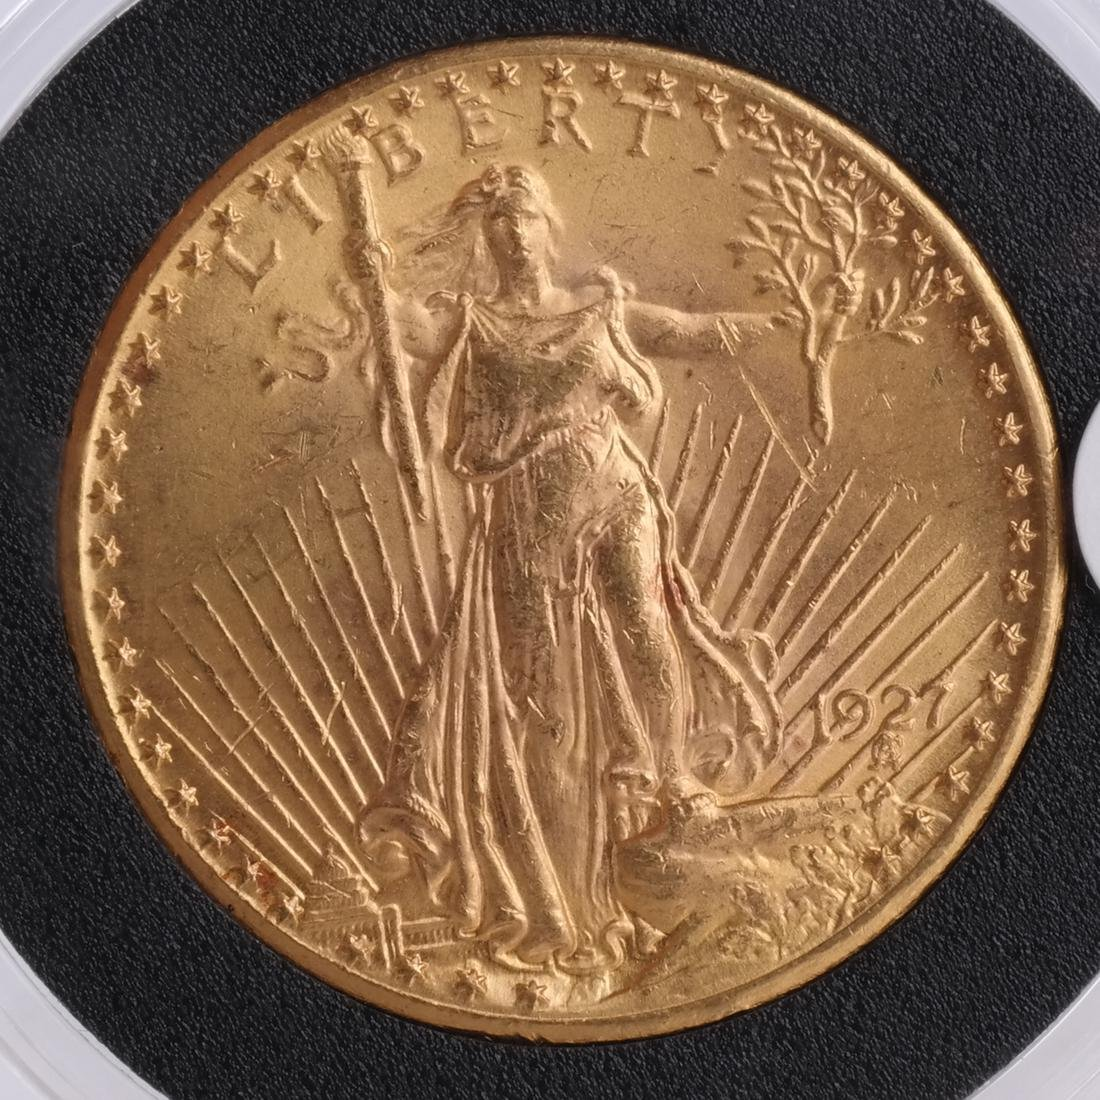 1927 $20 Gold Saint Gaudens, MS 64